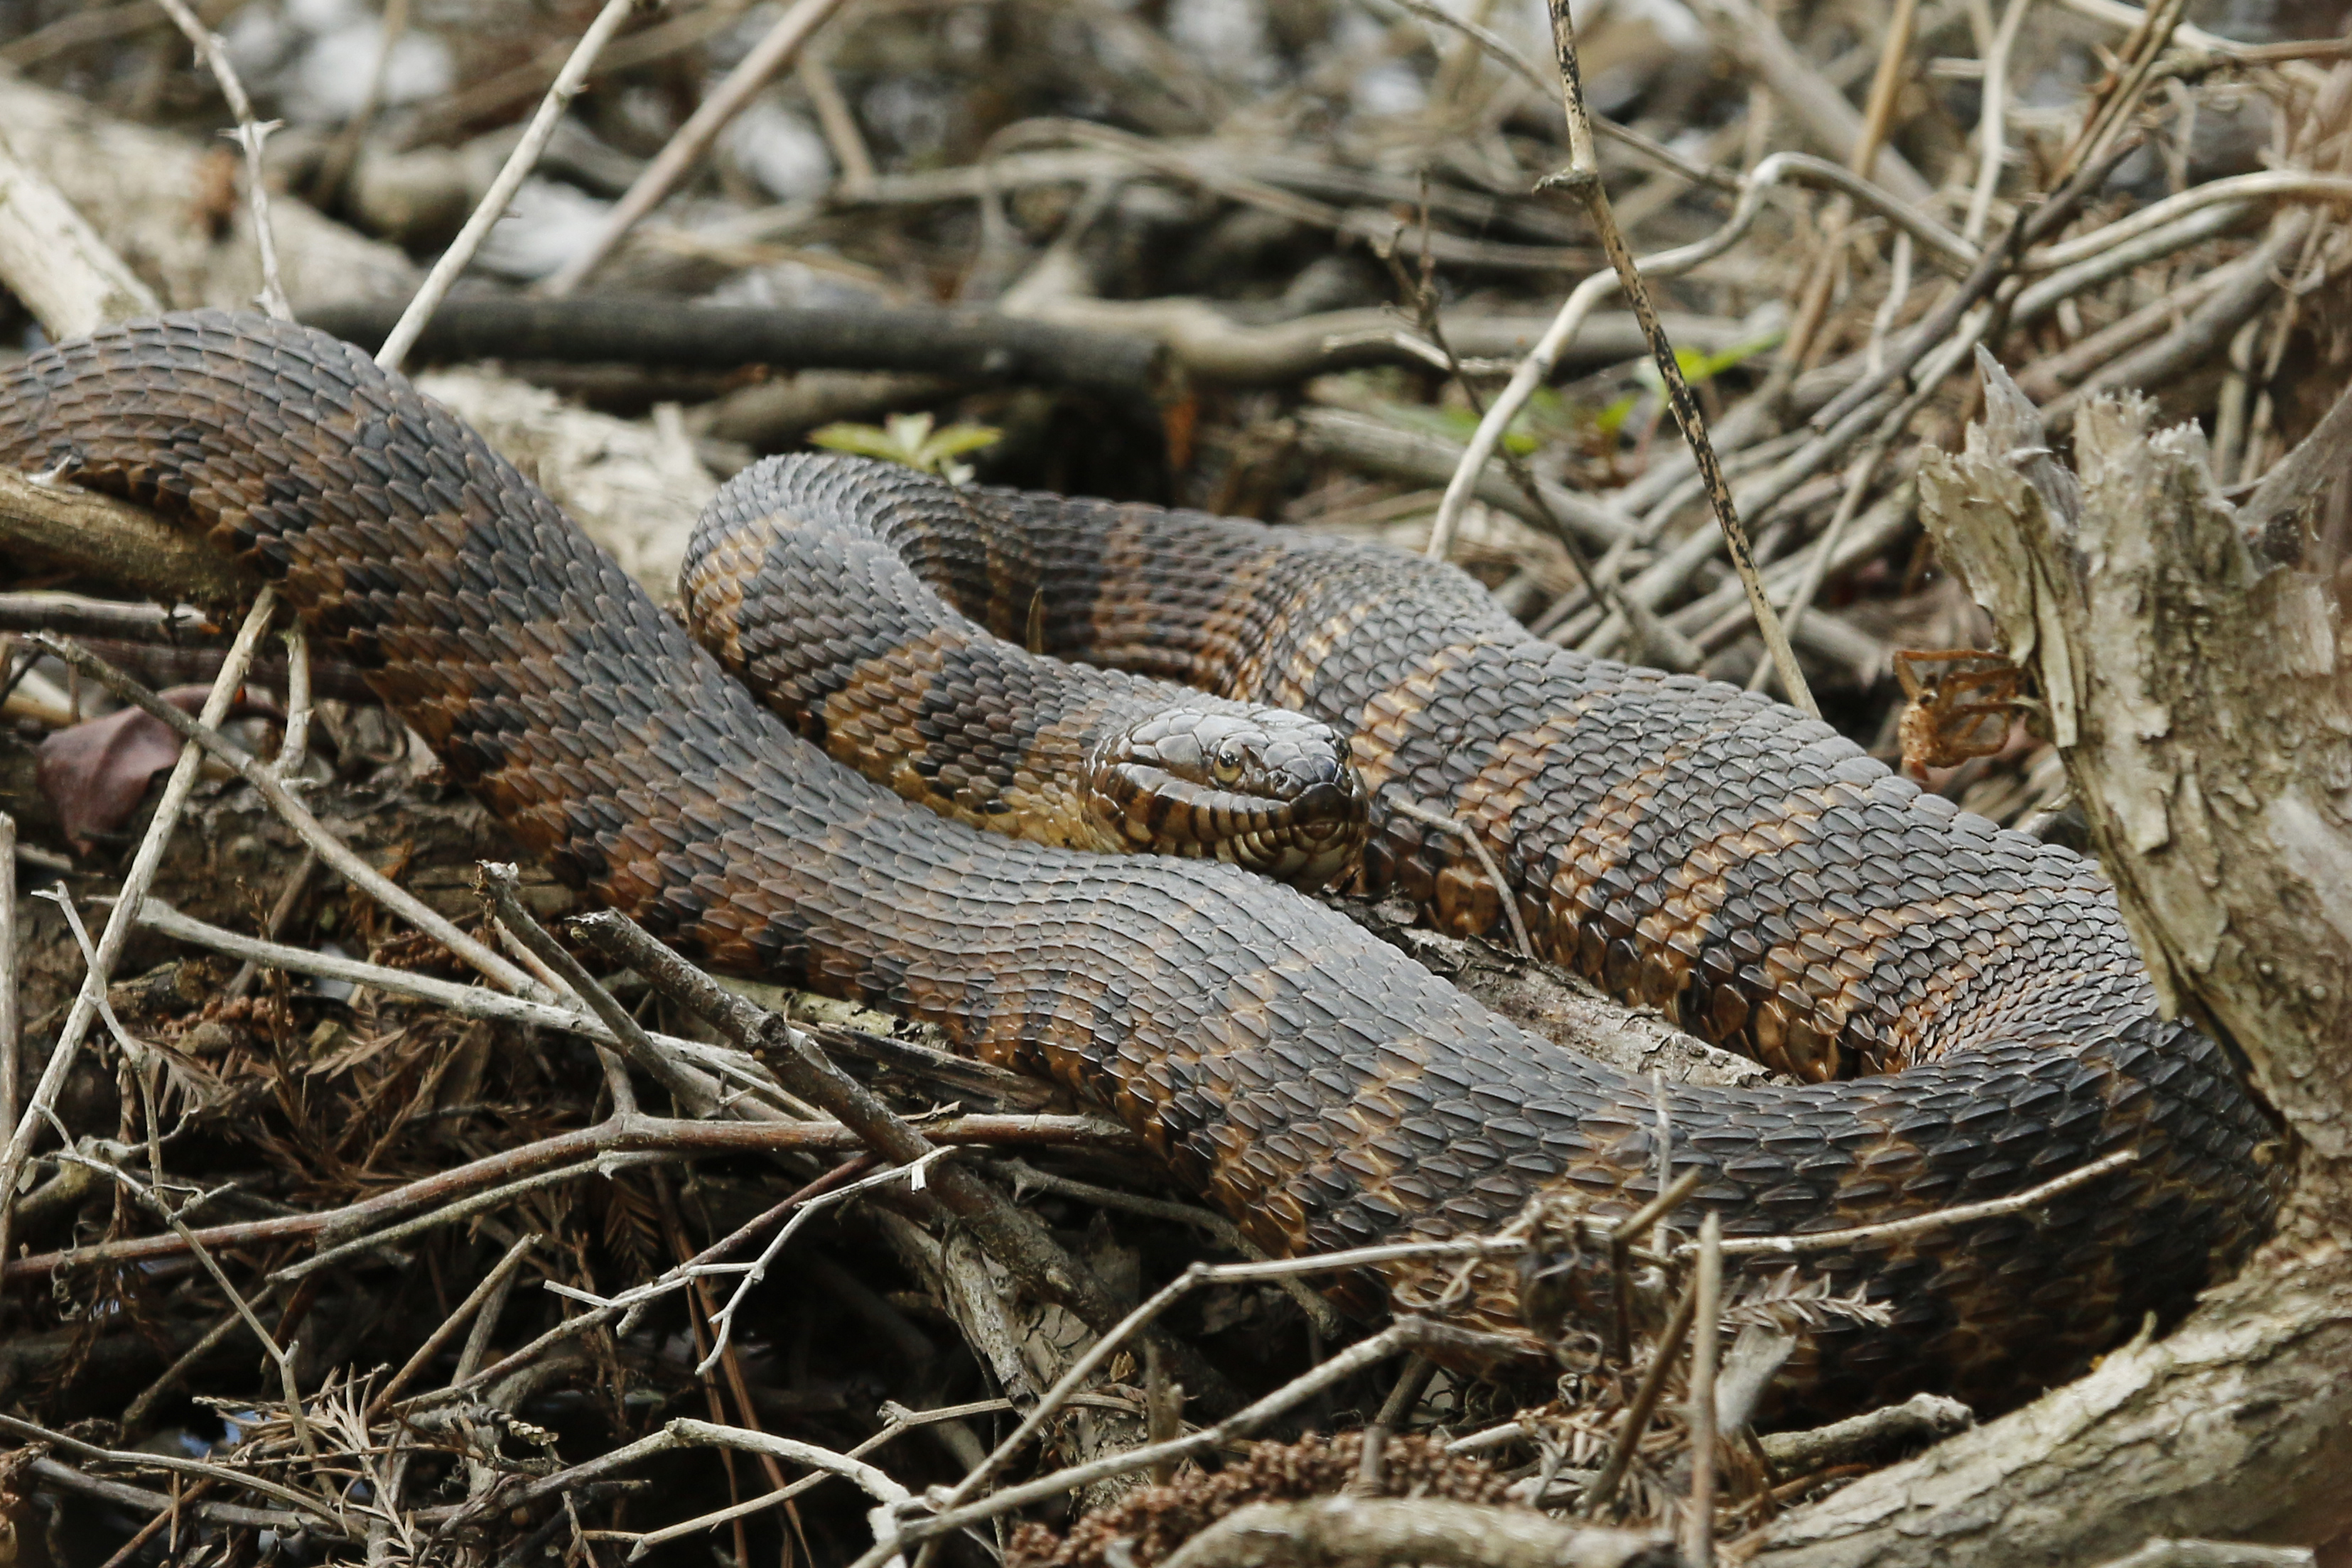 Eastern brown water snake, NC